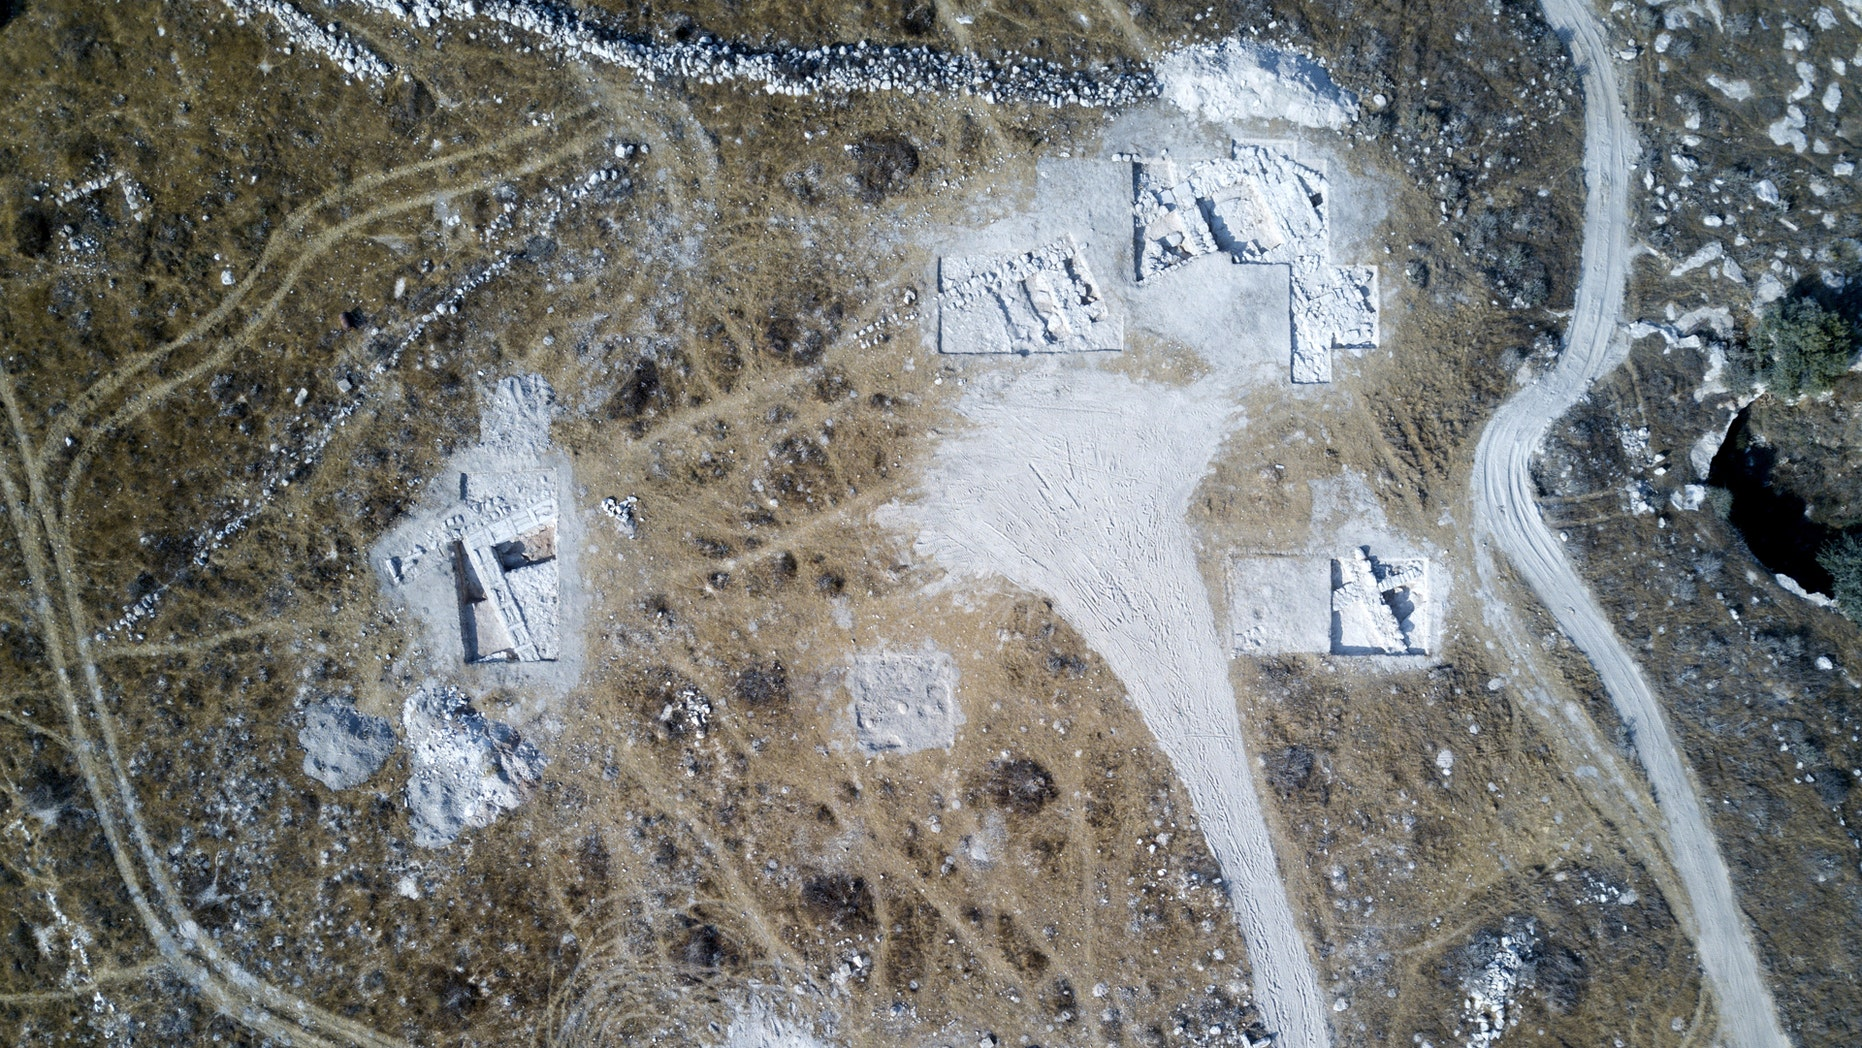 Area of the large structure, possibly a temple or palace, uncovered in the dig.